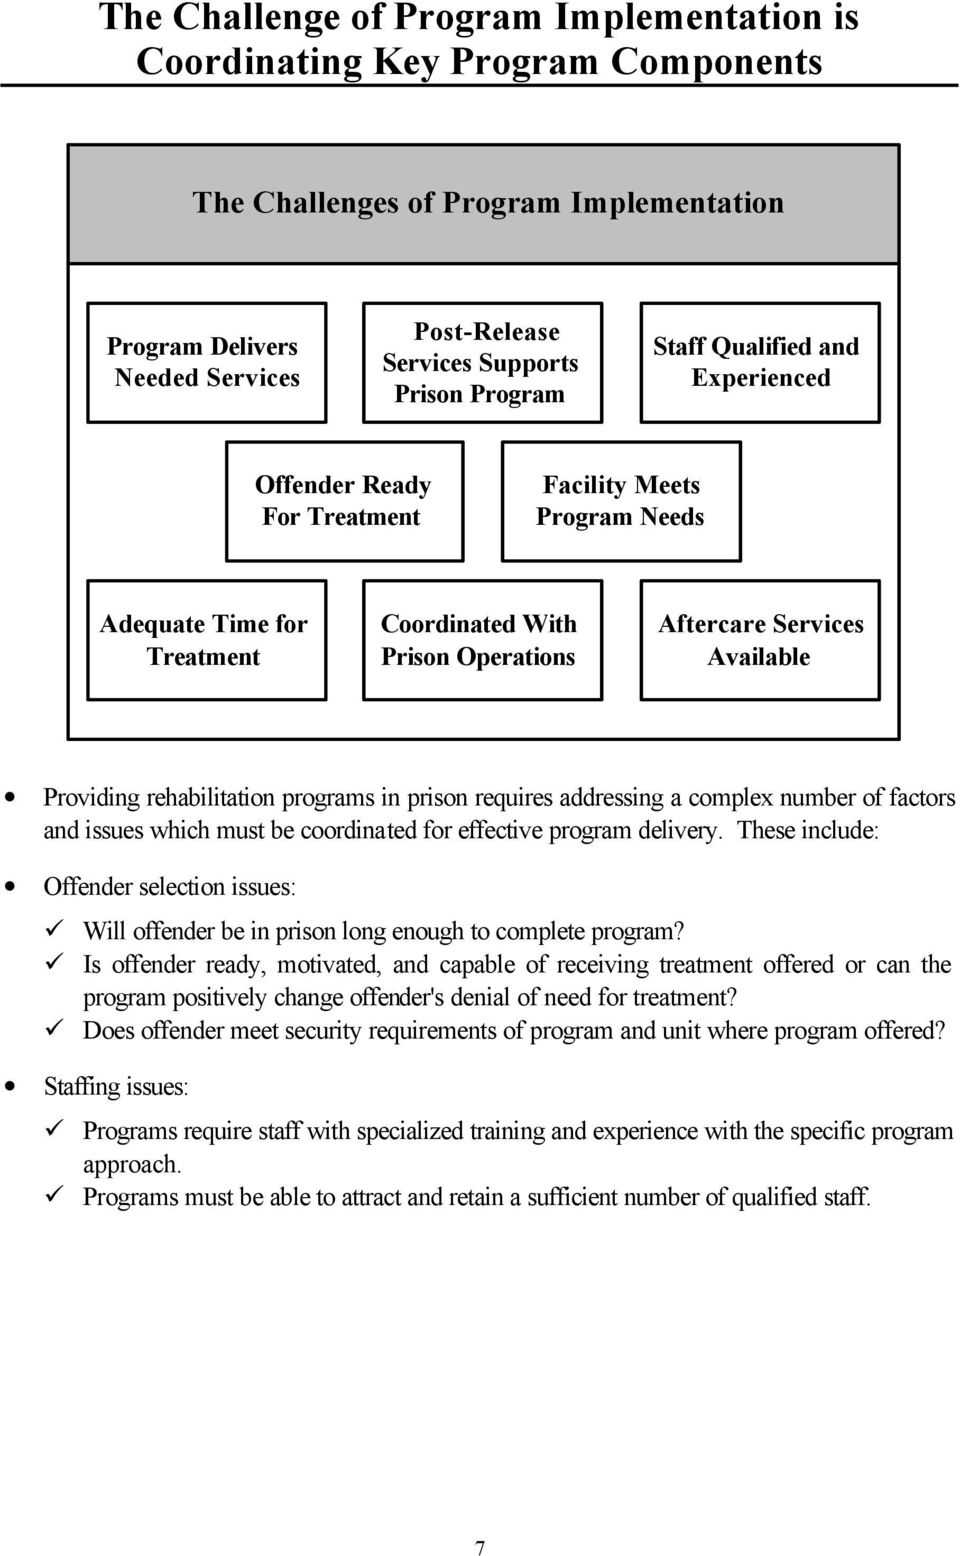 rehabilitation programs in prison requires addressing a complex number of factors and issues which must be coordinated for effective program delivery.